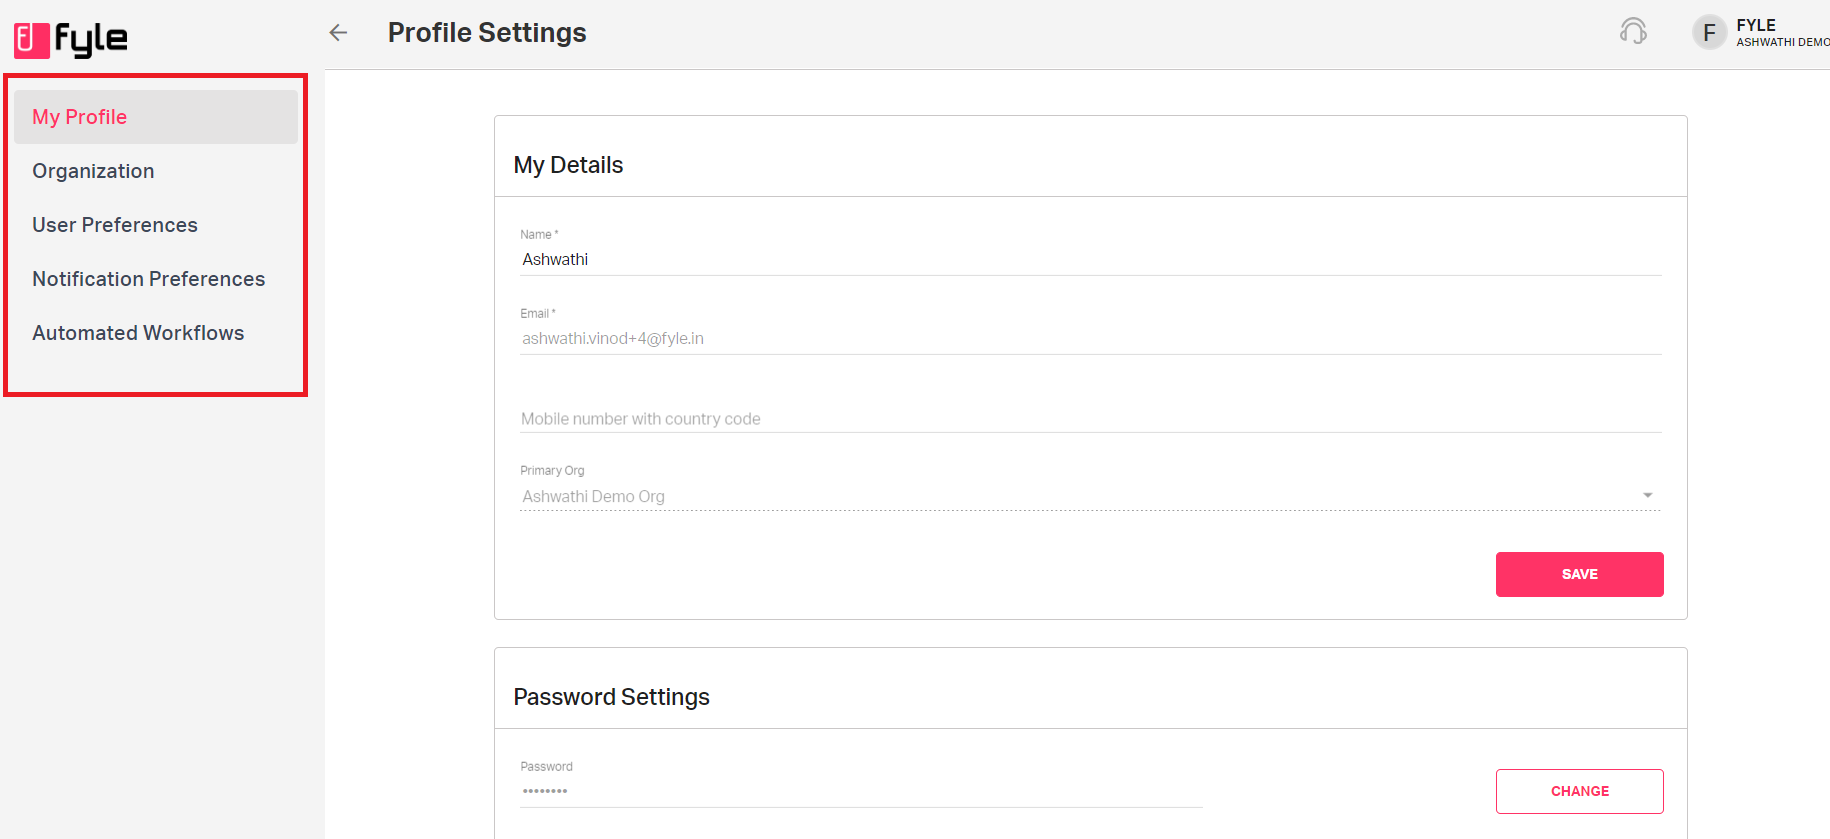 User's profile setting page in Fyle